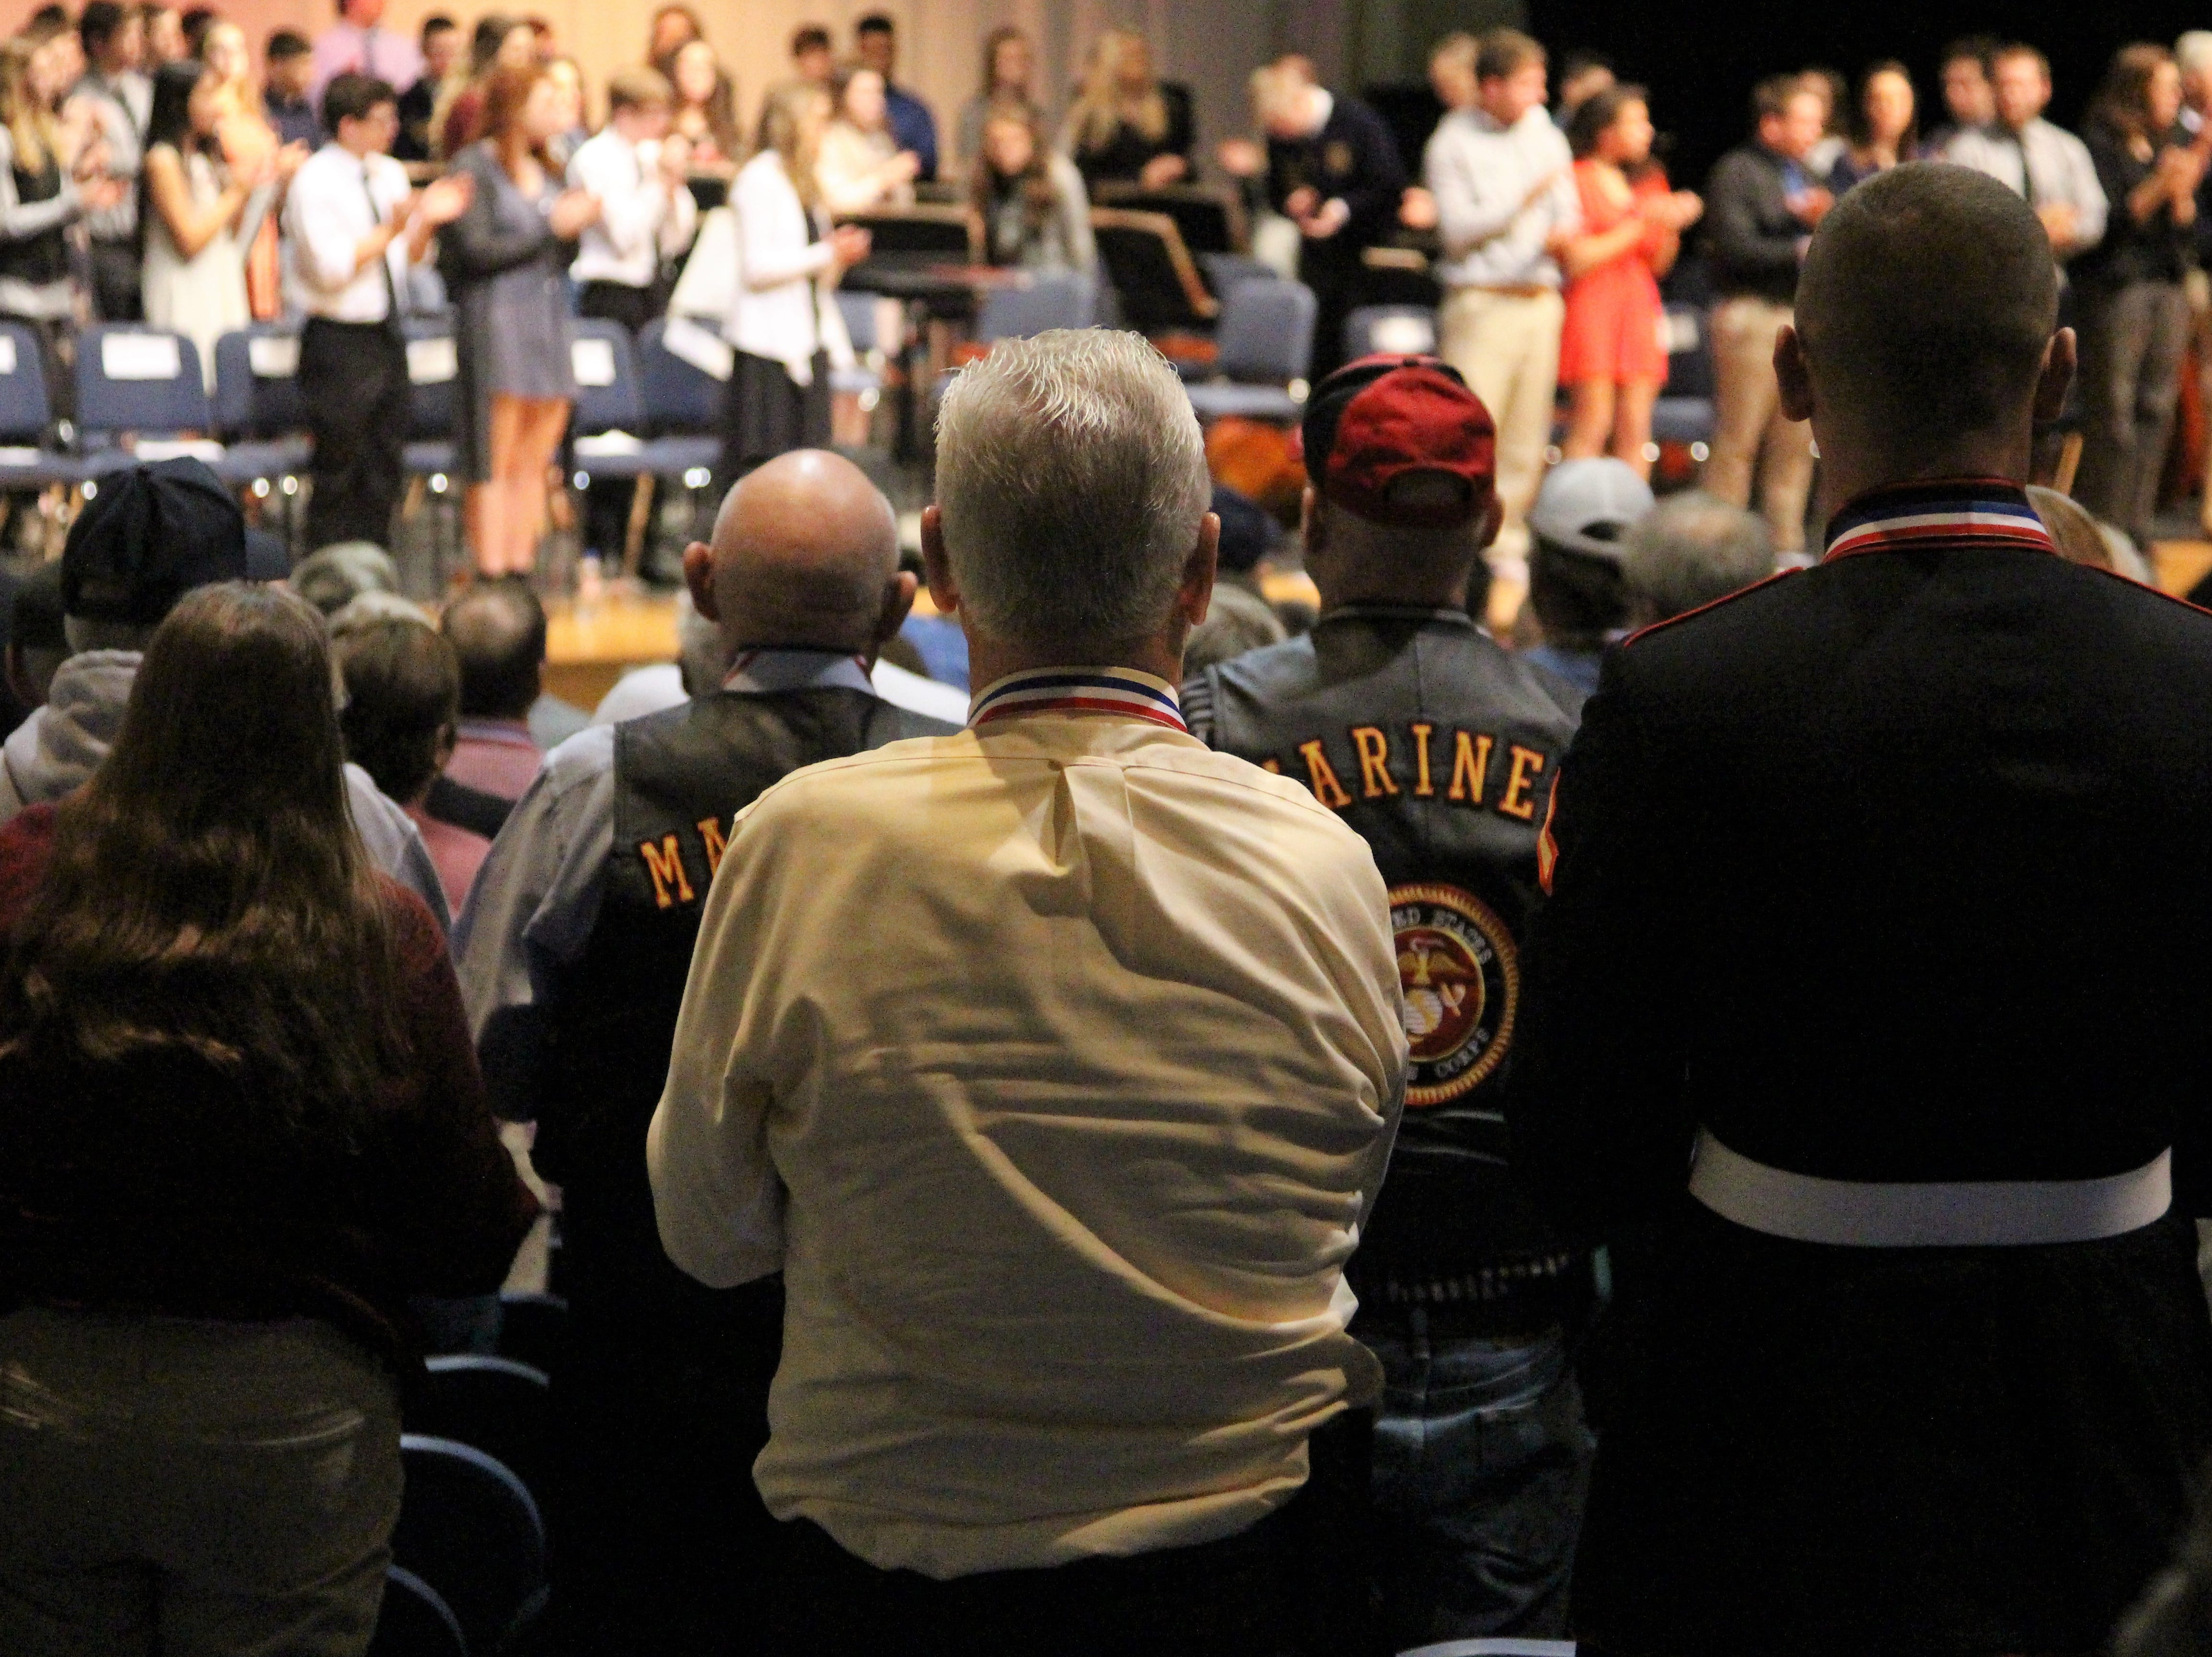 On Tuesday, veterans from different branches, different eras and different wars rose to their feet to honor a Marion resident who was killed while serving in Afghanistan. They had arrived at River Valley High School that morning to take part in a post Veteran Day celebration.